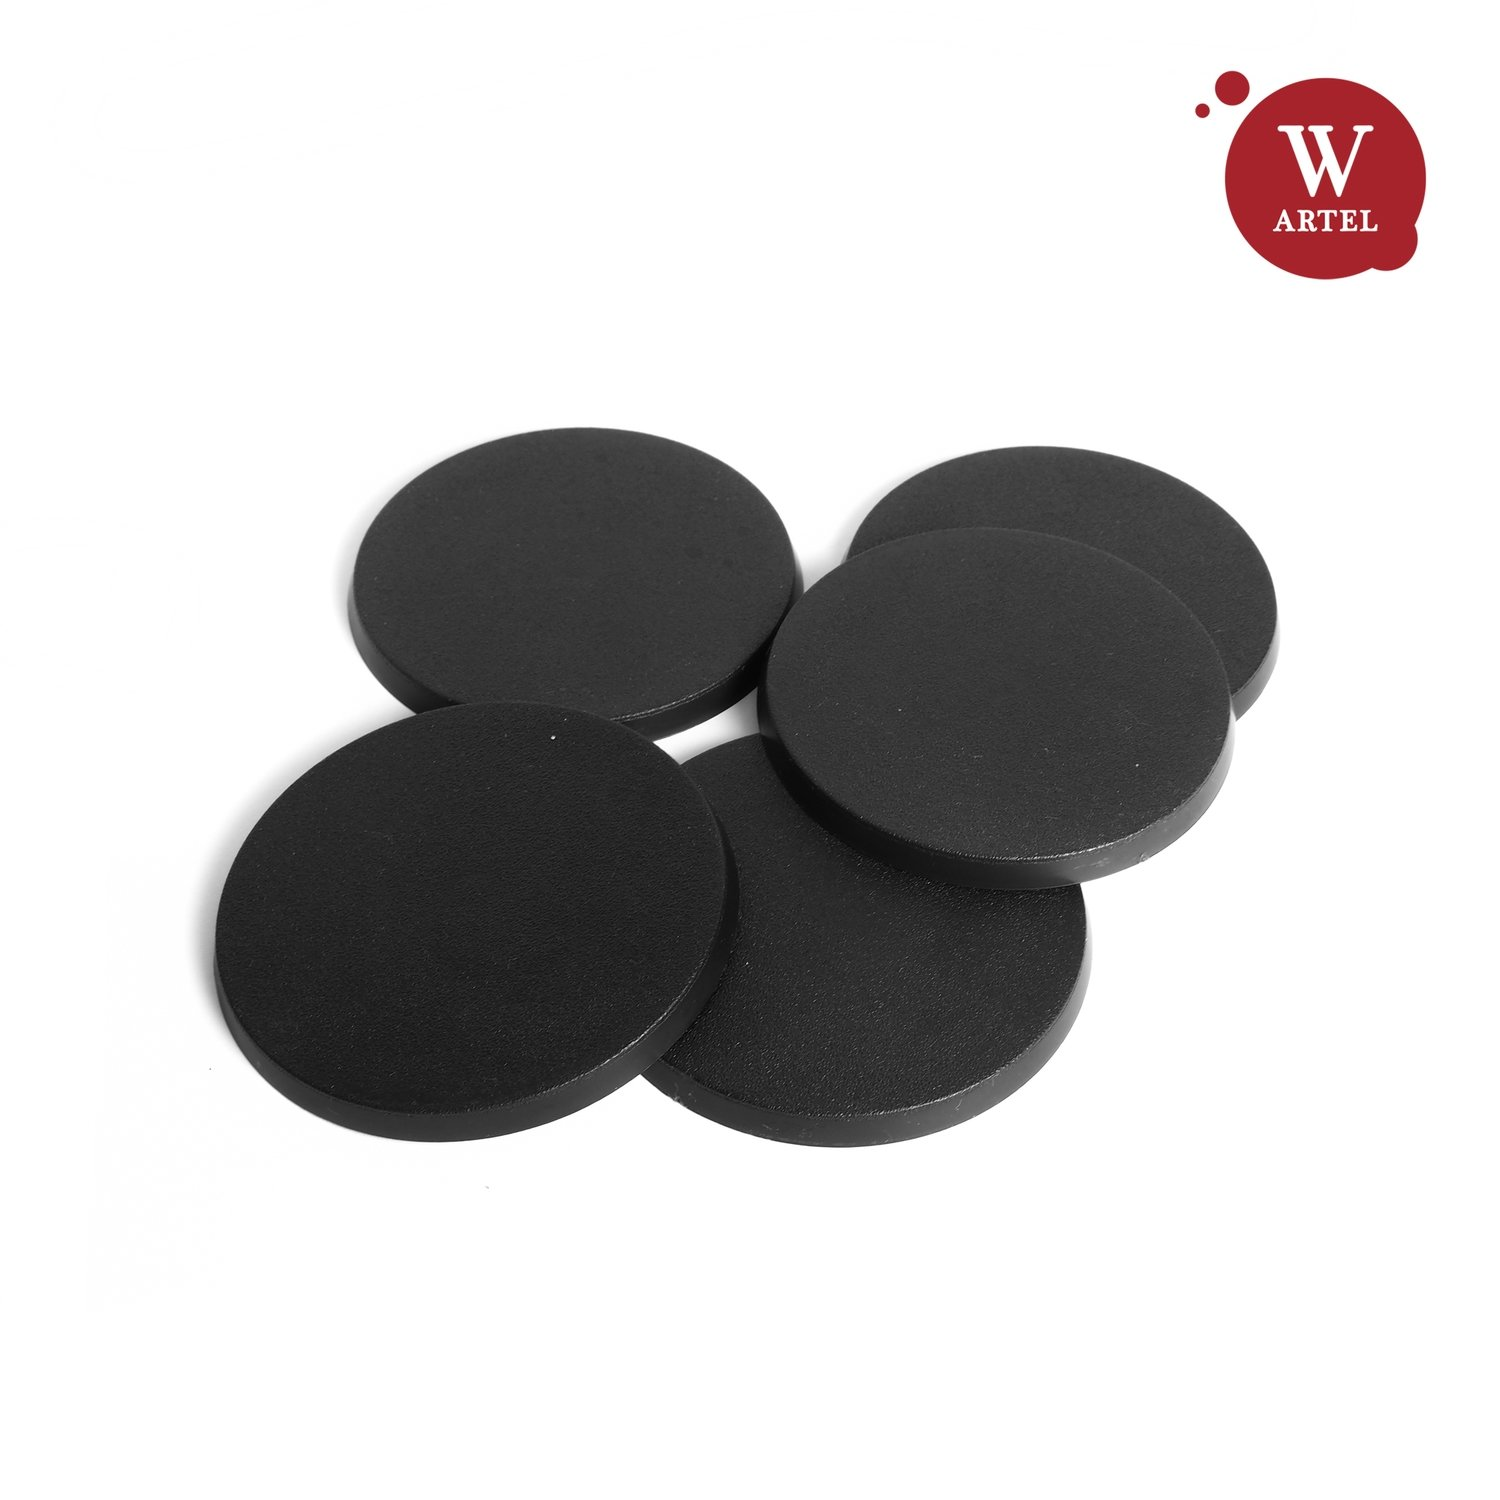 5x60mm round bases for miniatures